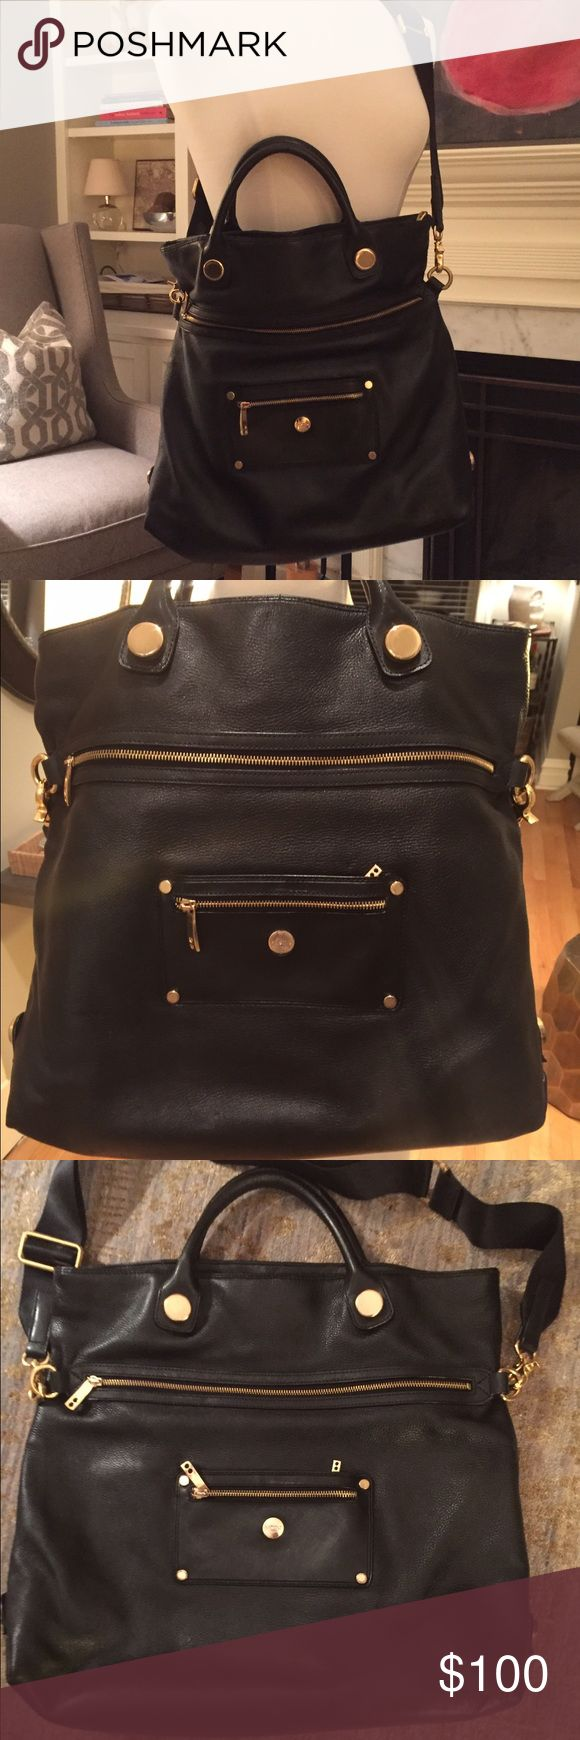 Knomo London Laptop/Work Bag Sophisticated, spacious,and smart work bag.  Black pebble leather with gold hardware and good pockets to keep you organized!  Can be crossbody (removable strap) or handle. knomo Bags Laptop Bags